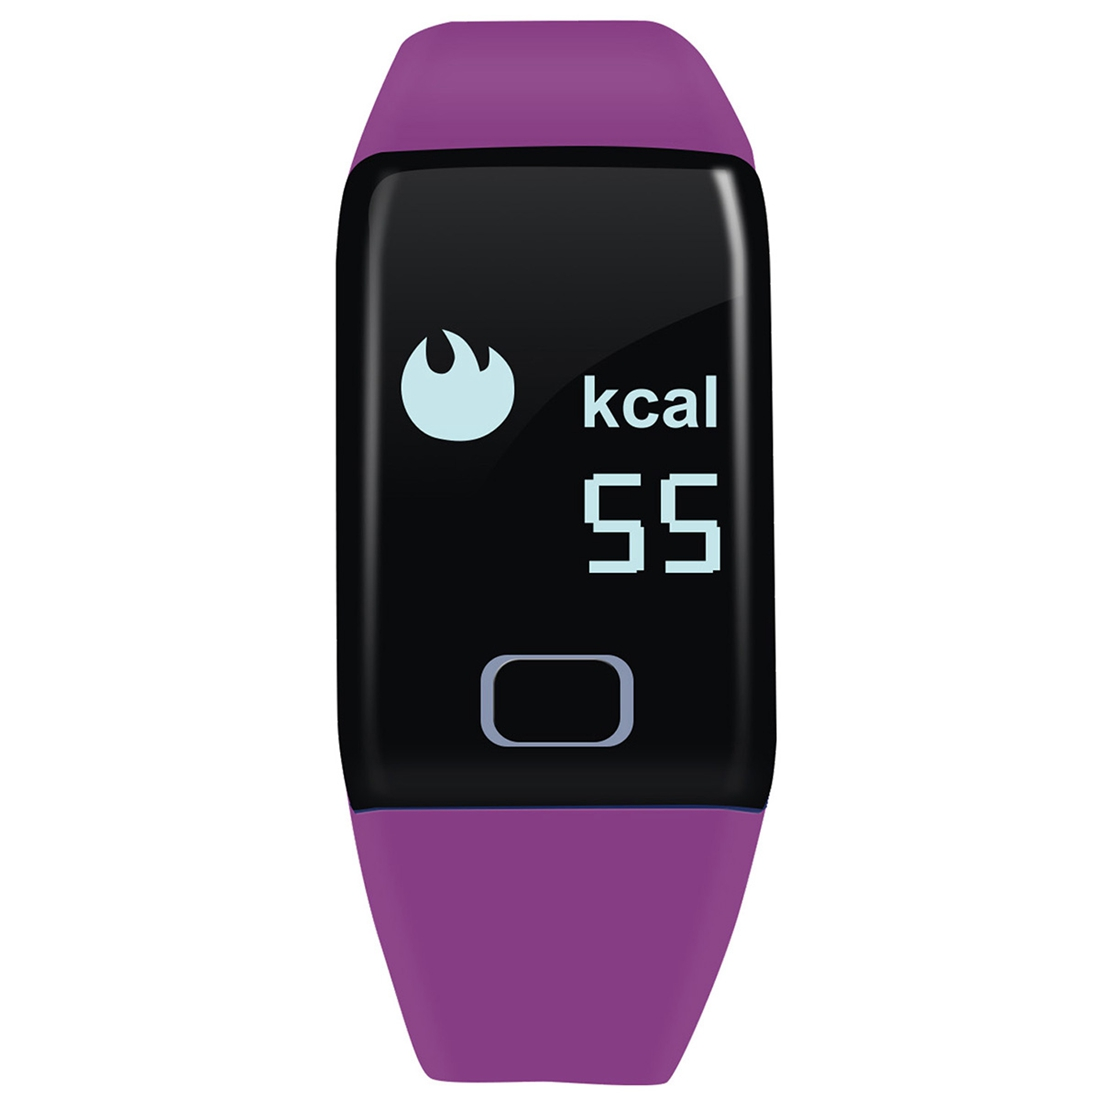 T1S Bluetooth 4.0 multi-function pedometers